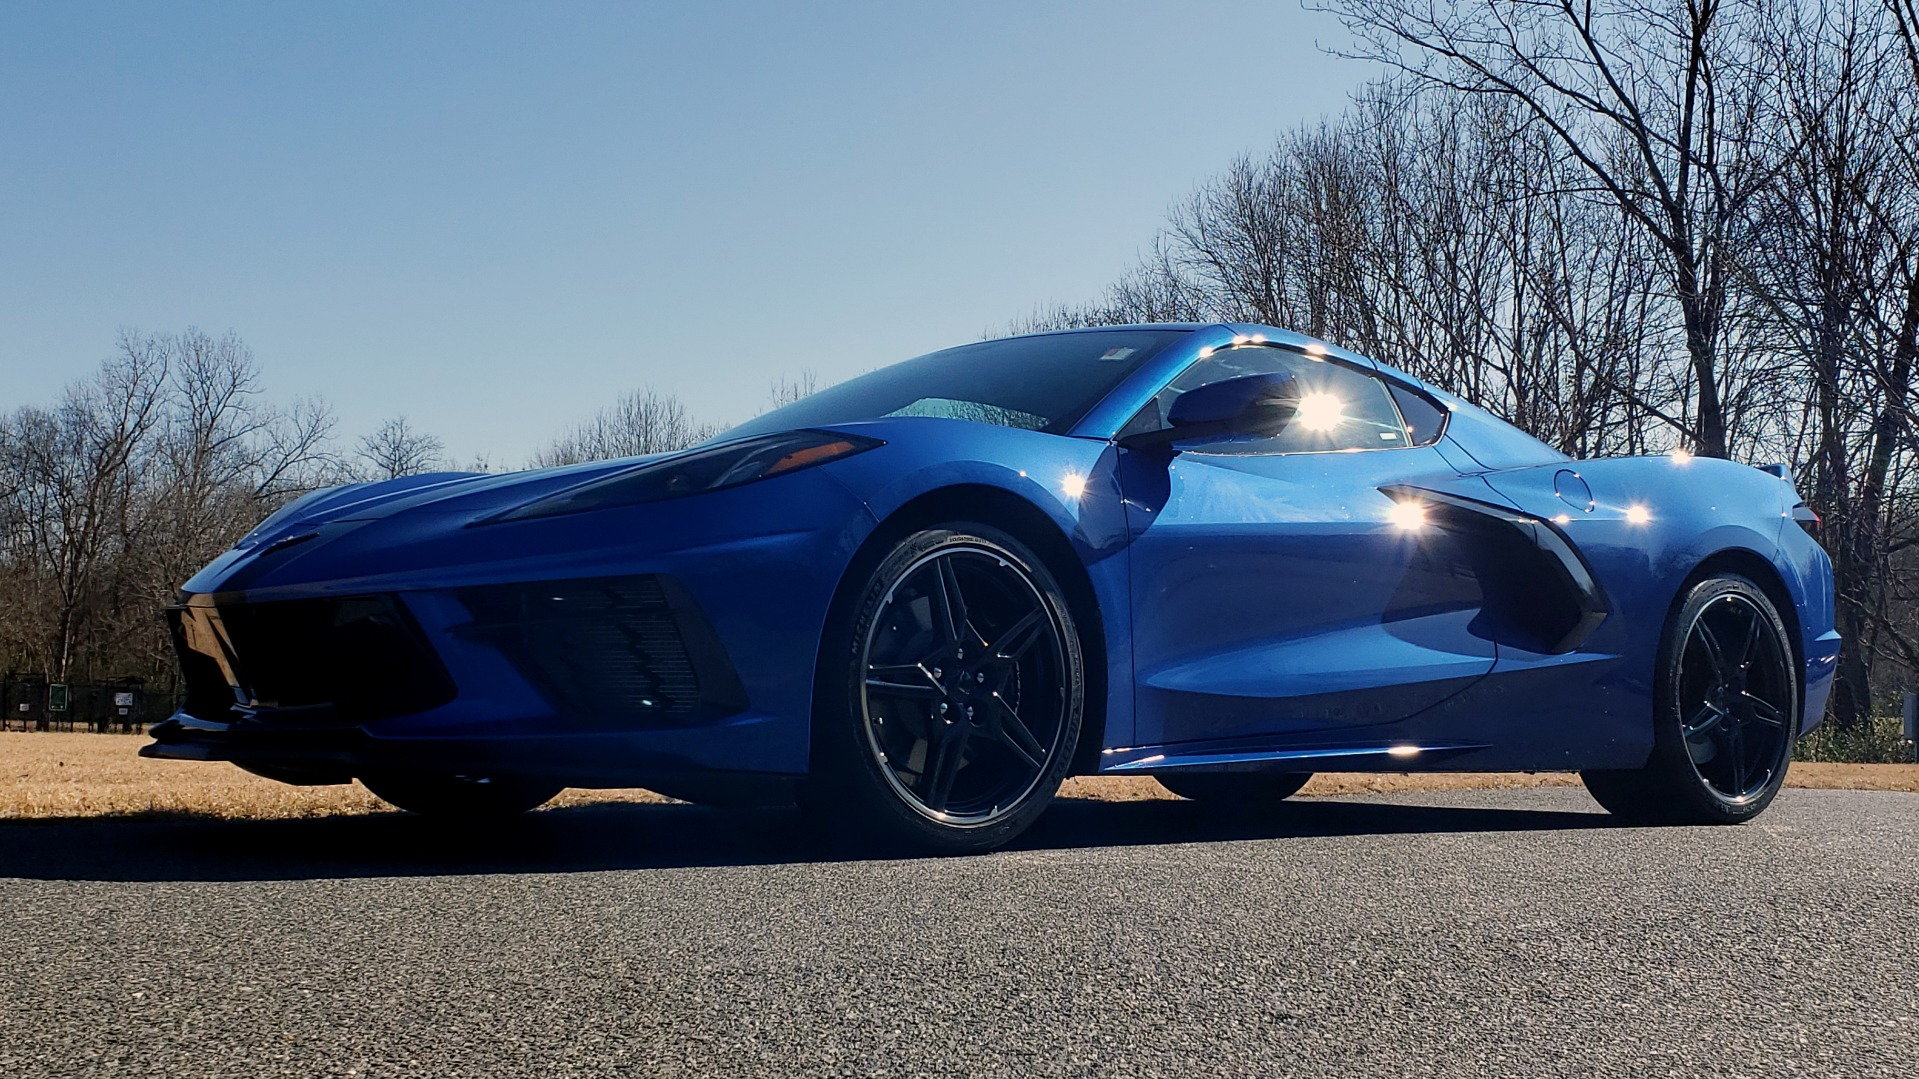 Used 2020 Chevrolet C8 CORVETTE STINGRAY 2LT COUPE / NAV / HUD / BOSE / GT2 SEATS / FRONT LIFT / REARVIEW for sale Sold at Formula Imports in Charlotte NC 28227 4